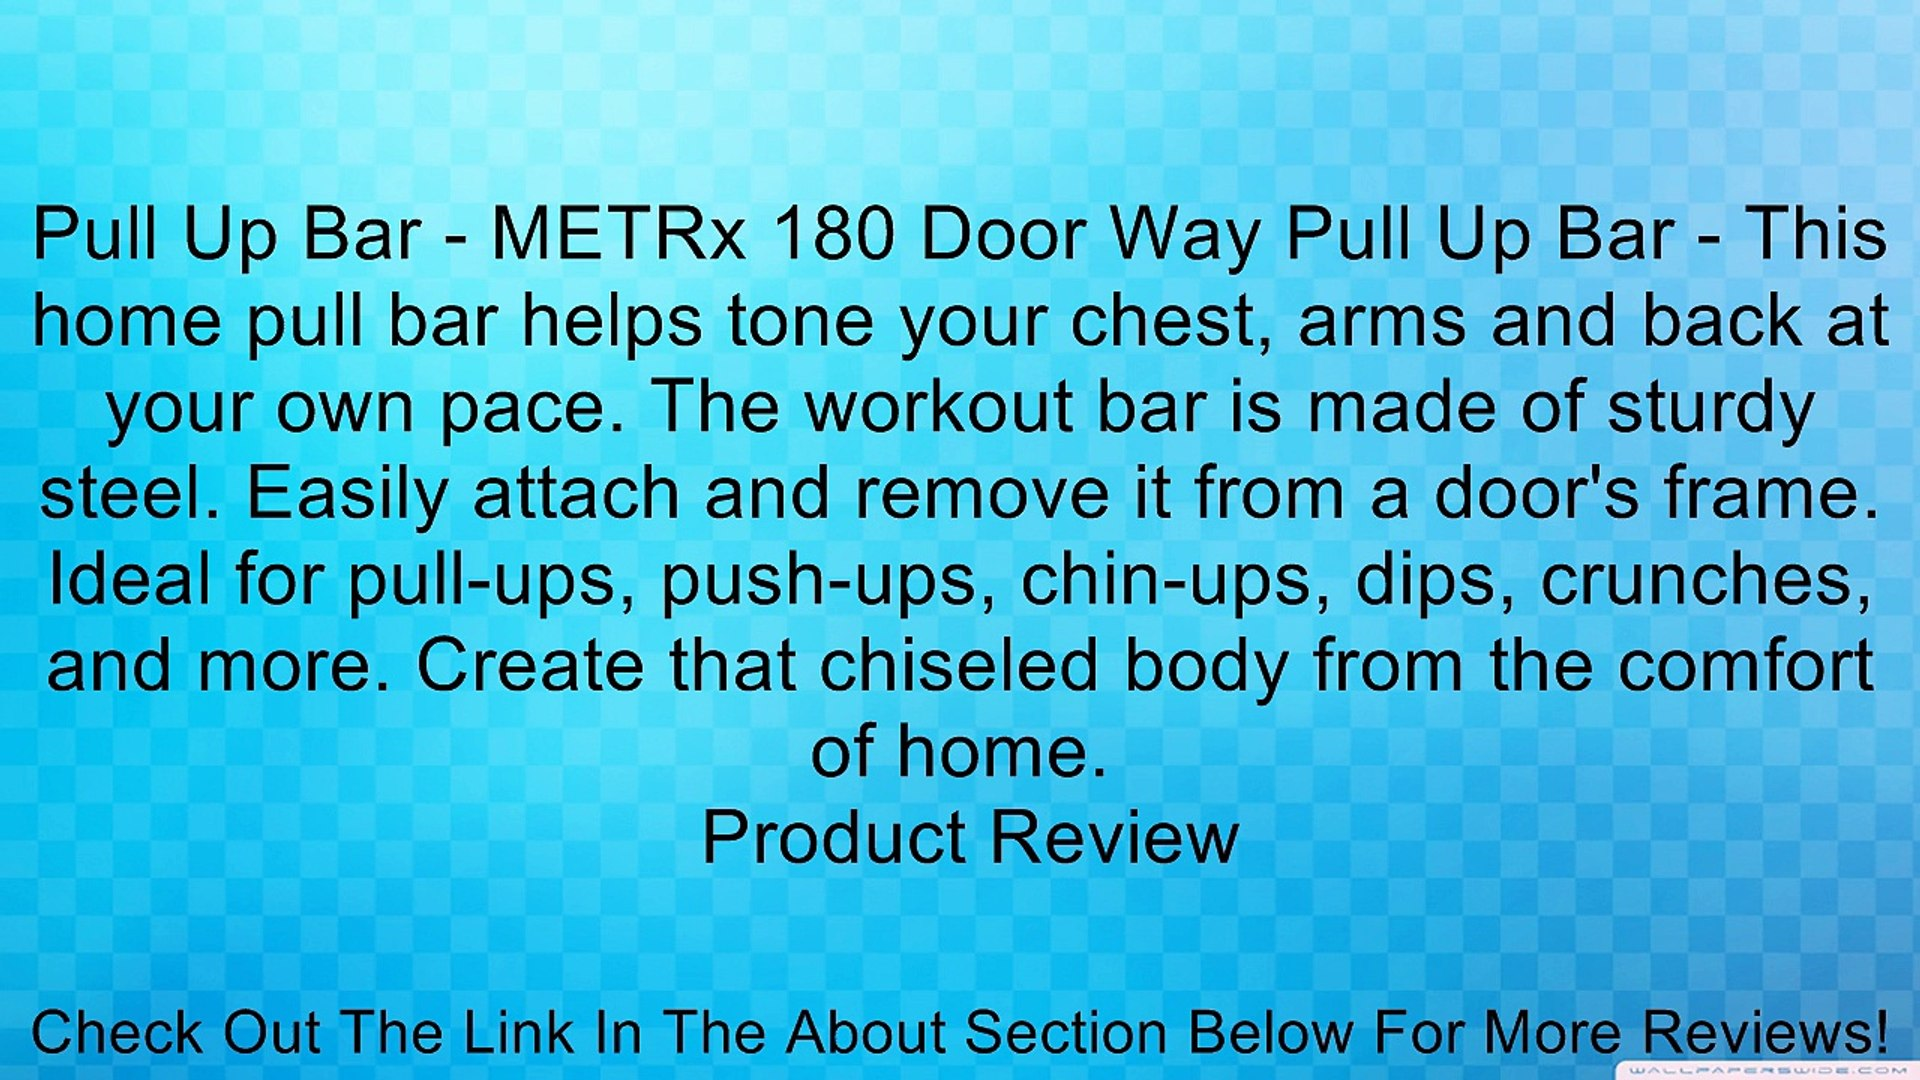 Pull Up Bar - METRx 180 Door Way Pull Up Bar - This home pull bar helps tone your chest, arms and ba